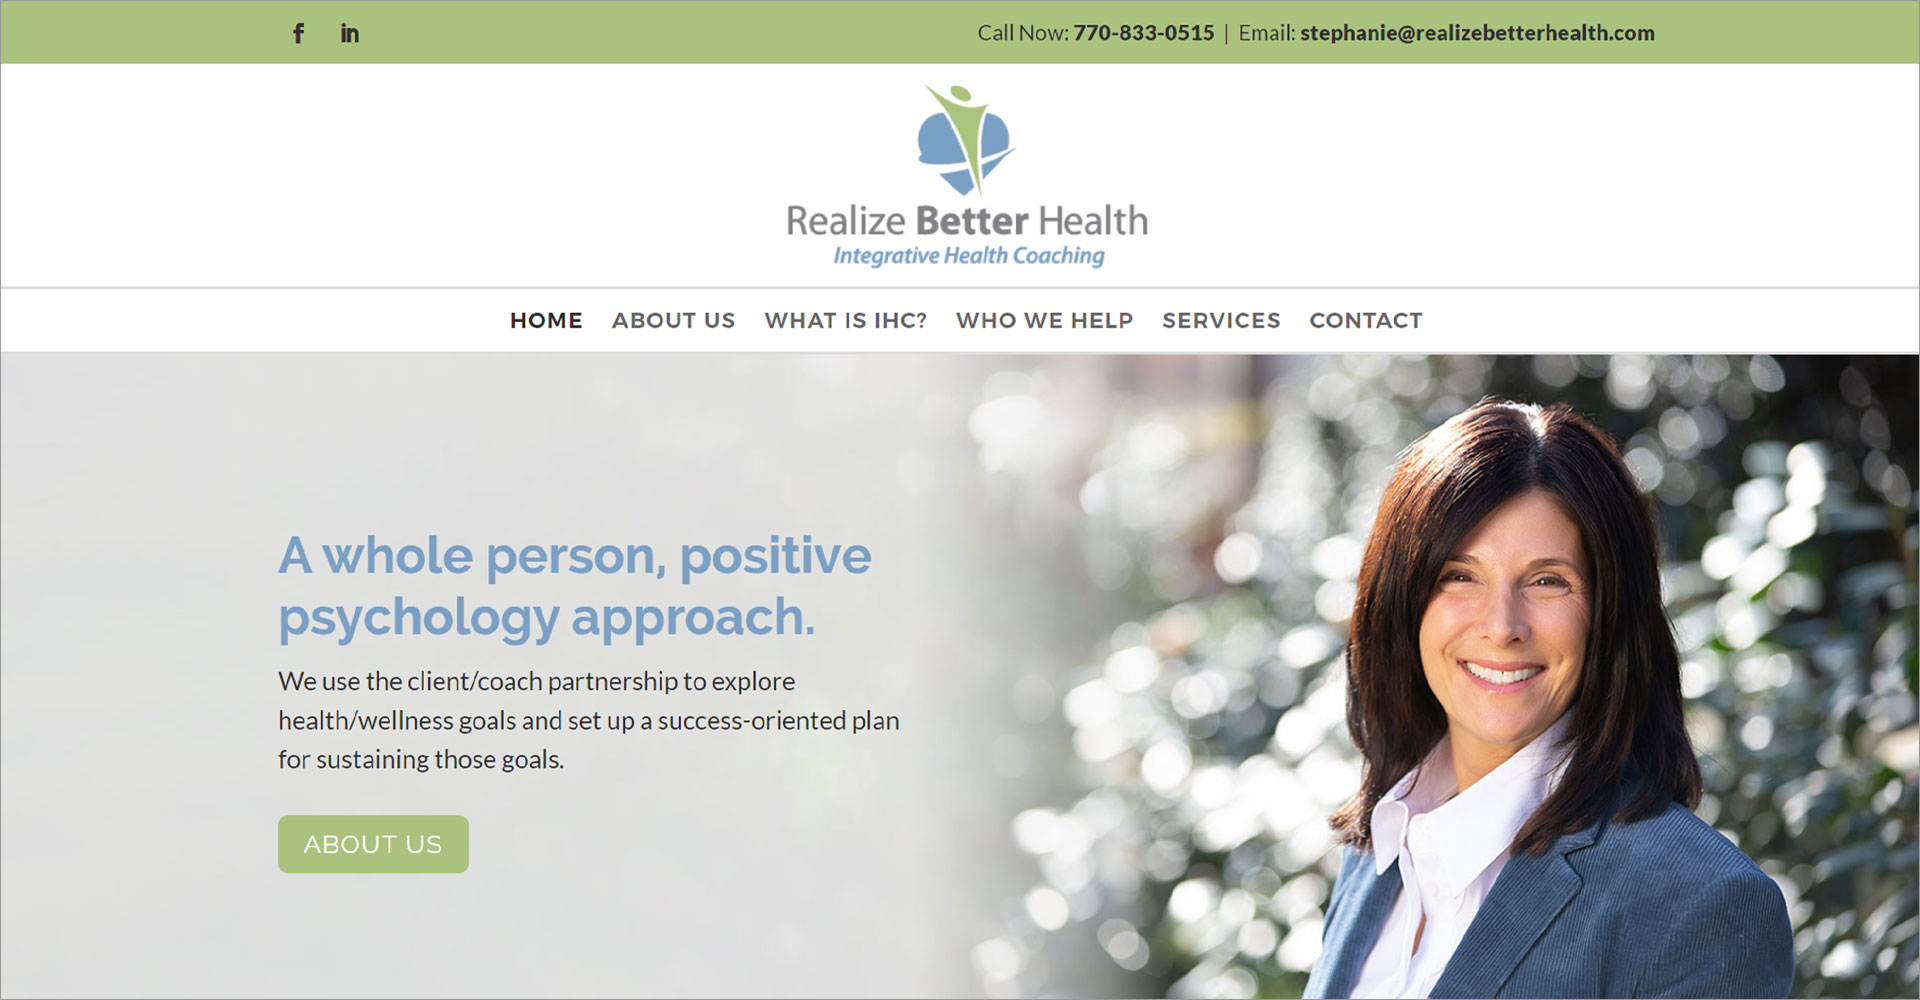 Realize Better Health - Zoda Design LLC